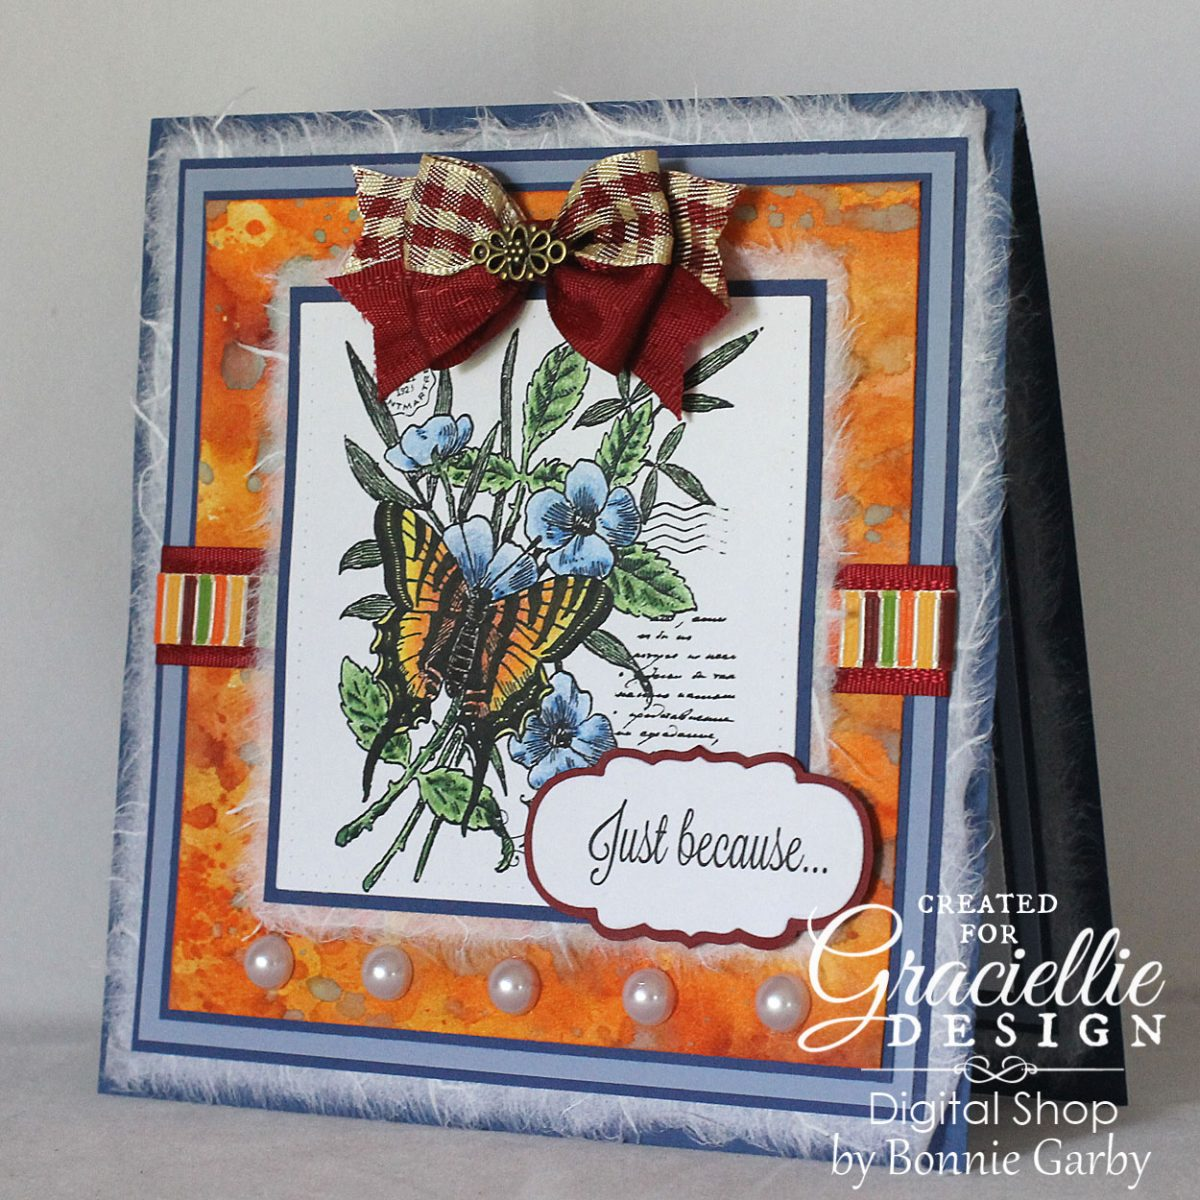 Just Because Card and Stamp Bundle SALE at Graciellie Design